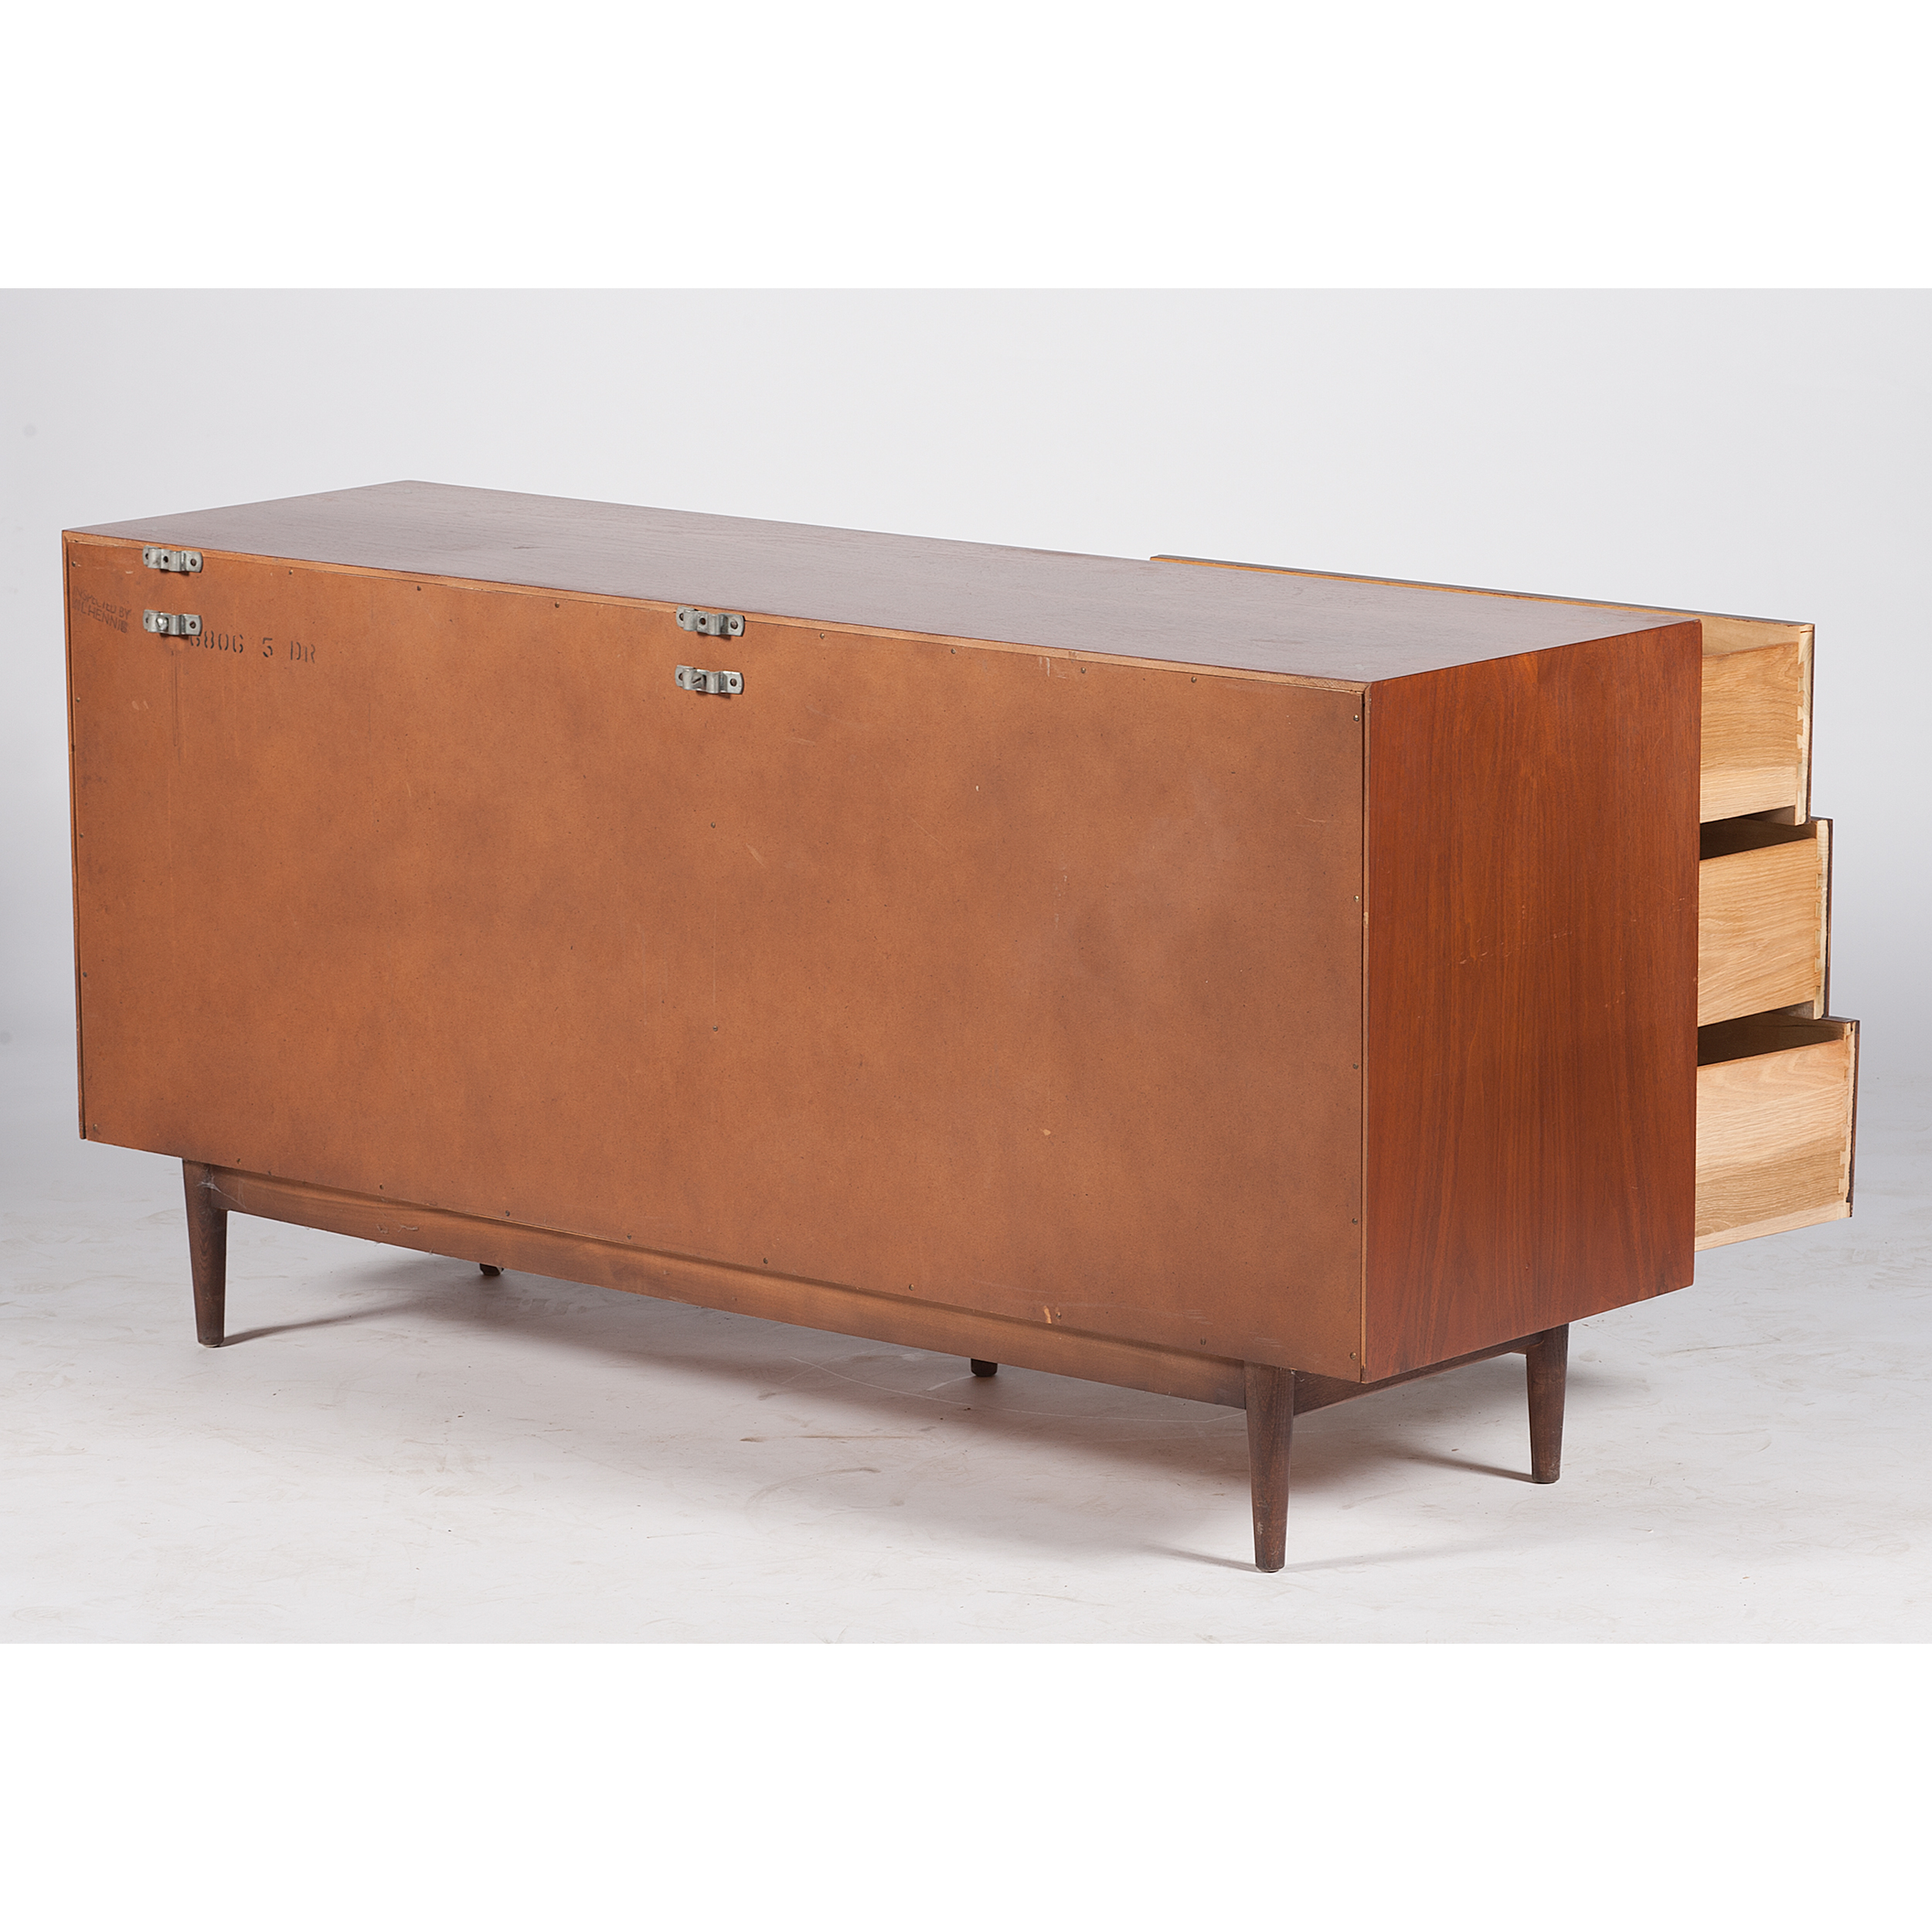 Image of: American Of Martinsville Mid Century Modern Dresser With Mirror Cowan S Auction House The Midwest S Most Trusted Auction House Antiques Fine Art Art Appraisals